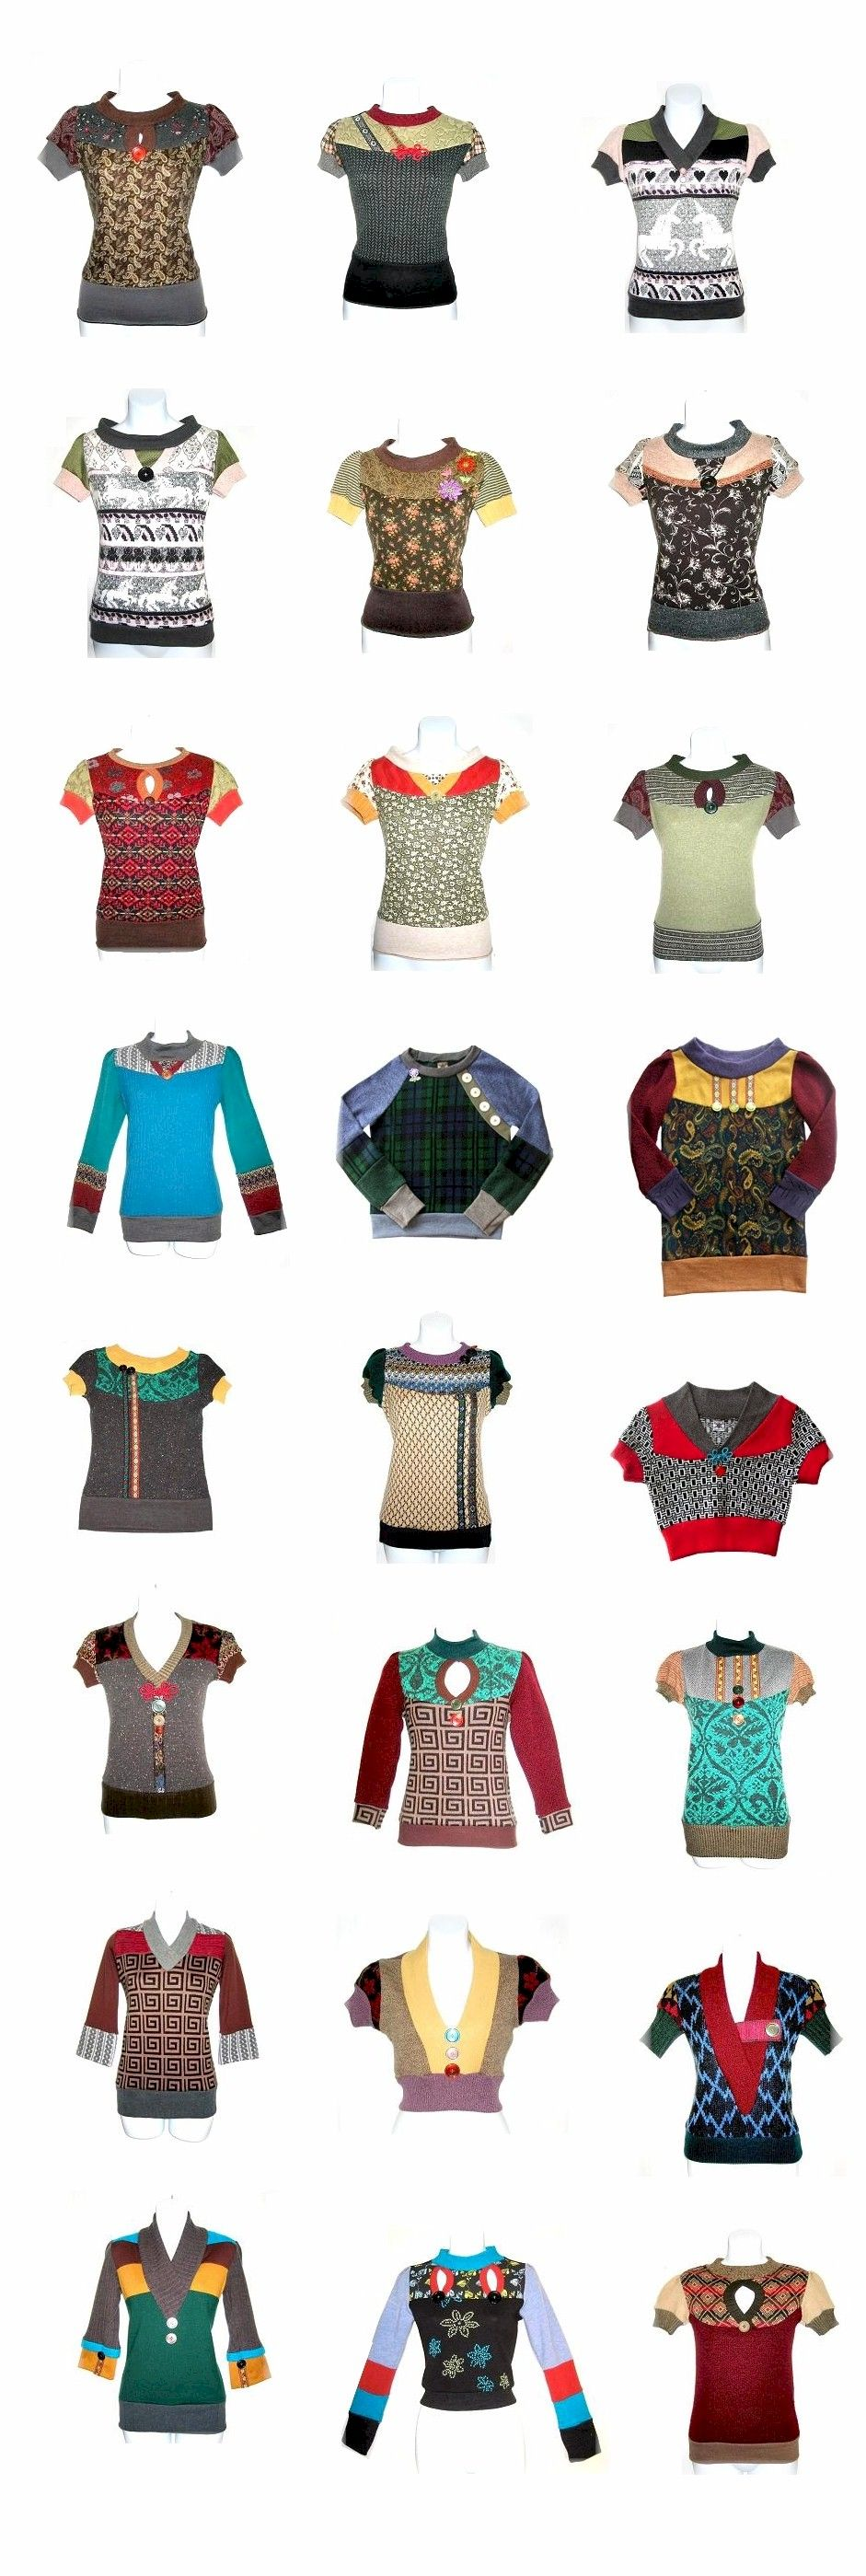 diy inspiration: recycle old sweaters! | Upcycle clothes